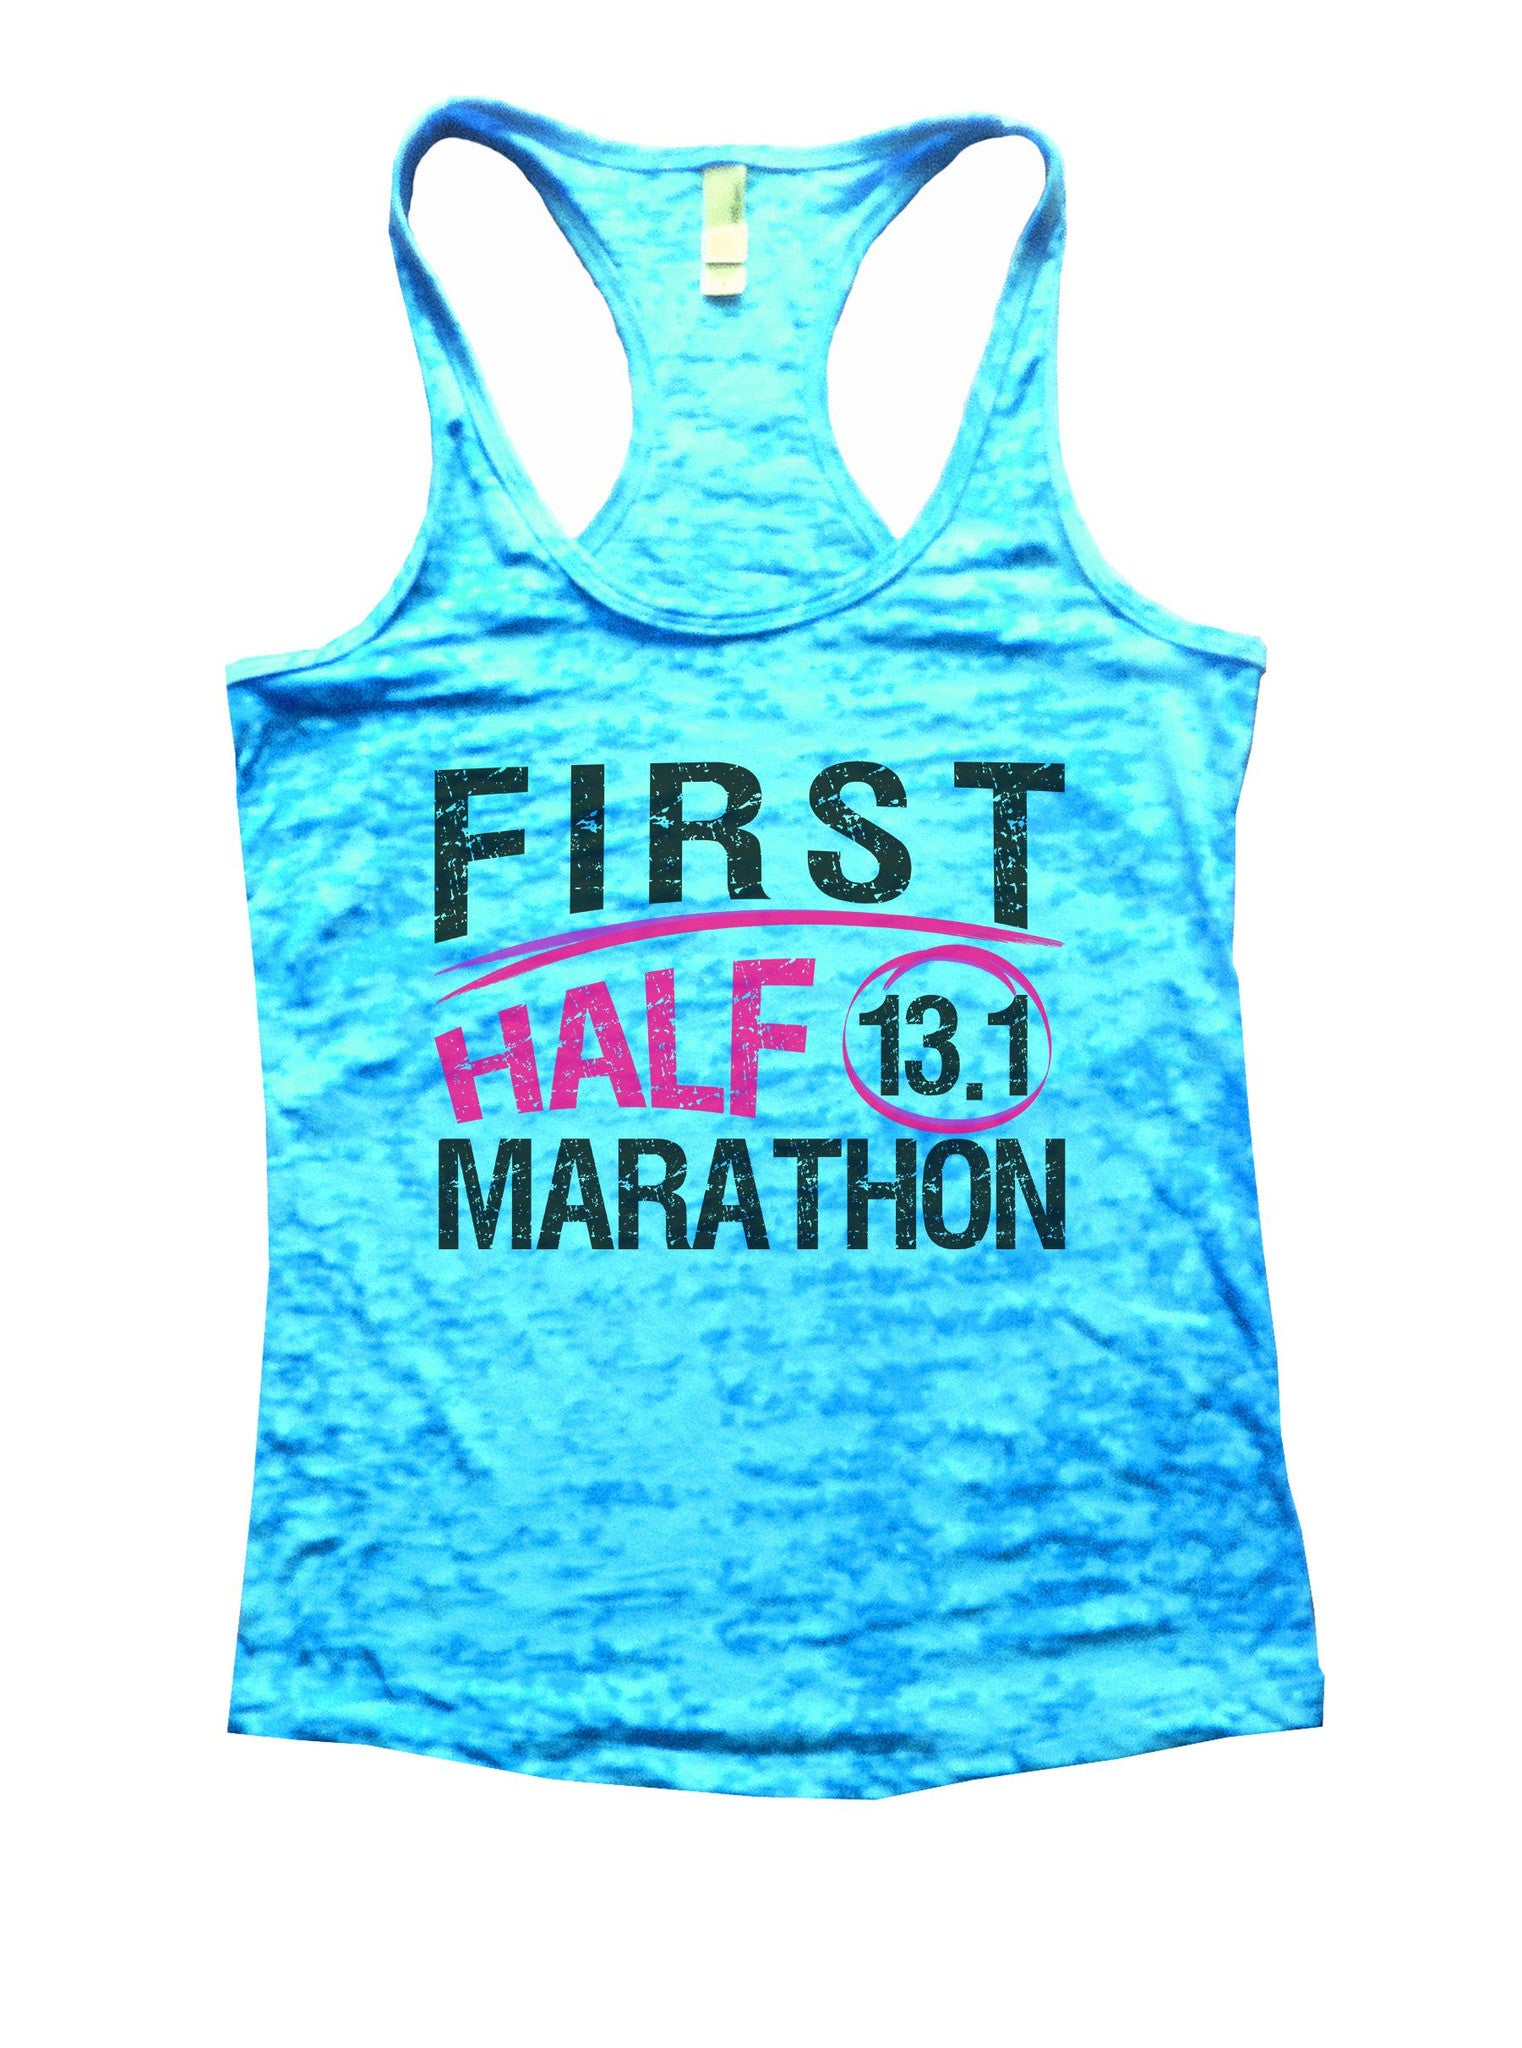 First Half 13.1 Marathon Burnout Tank Top By BurnoutTankTops.com - 1035 - Funny Shirts Tank Tops Burnouts and Triblends  - 4